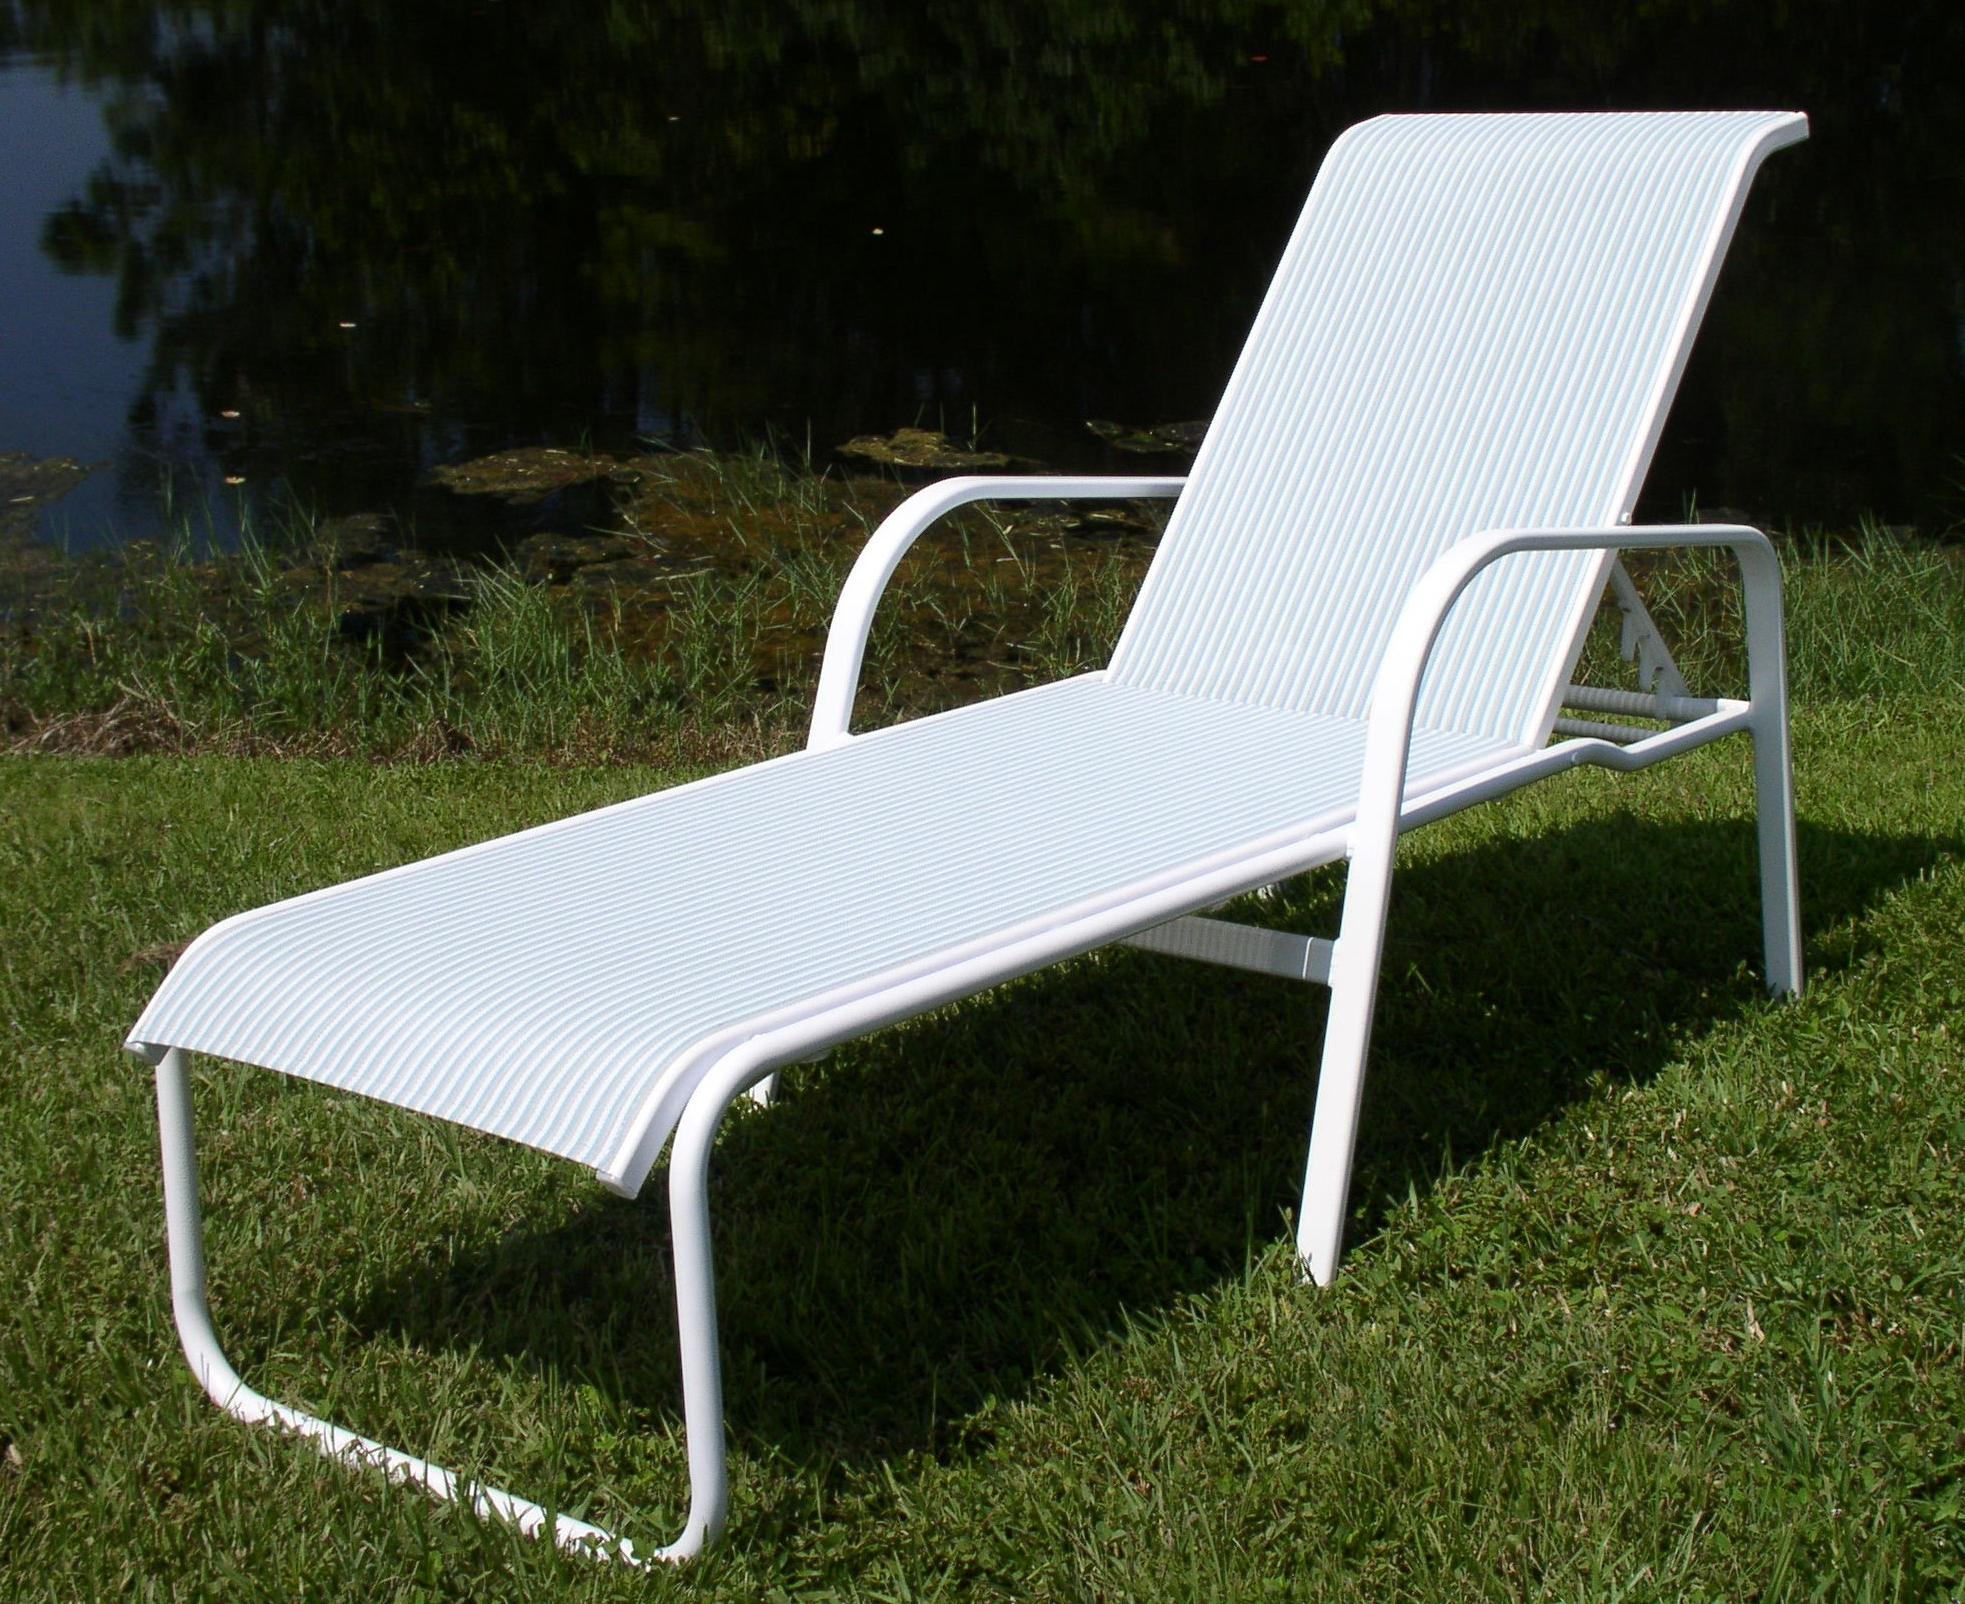 Sling Chaise Lounge Chair Attractive Pool Chairs 15 In Seat Ocean Throughout Popular Outdoor Mesh Chaise Lounge Chairs (View 14 of 15)